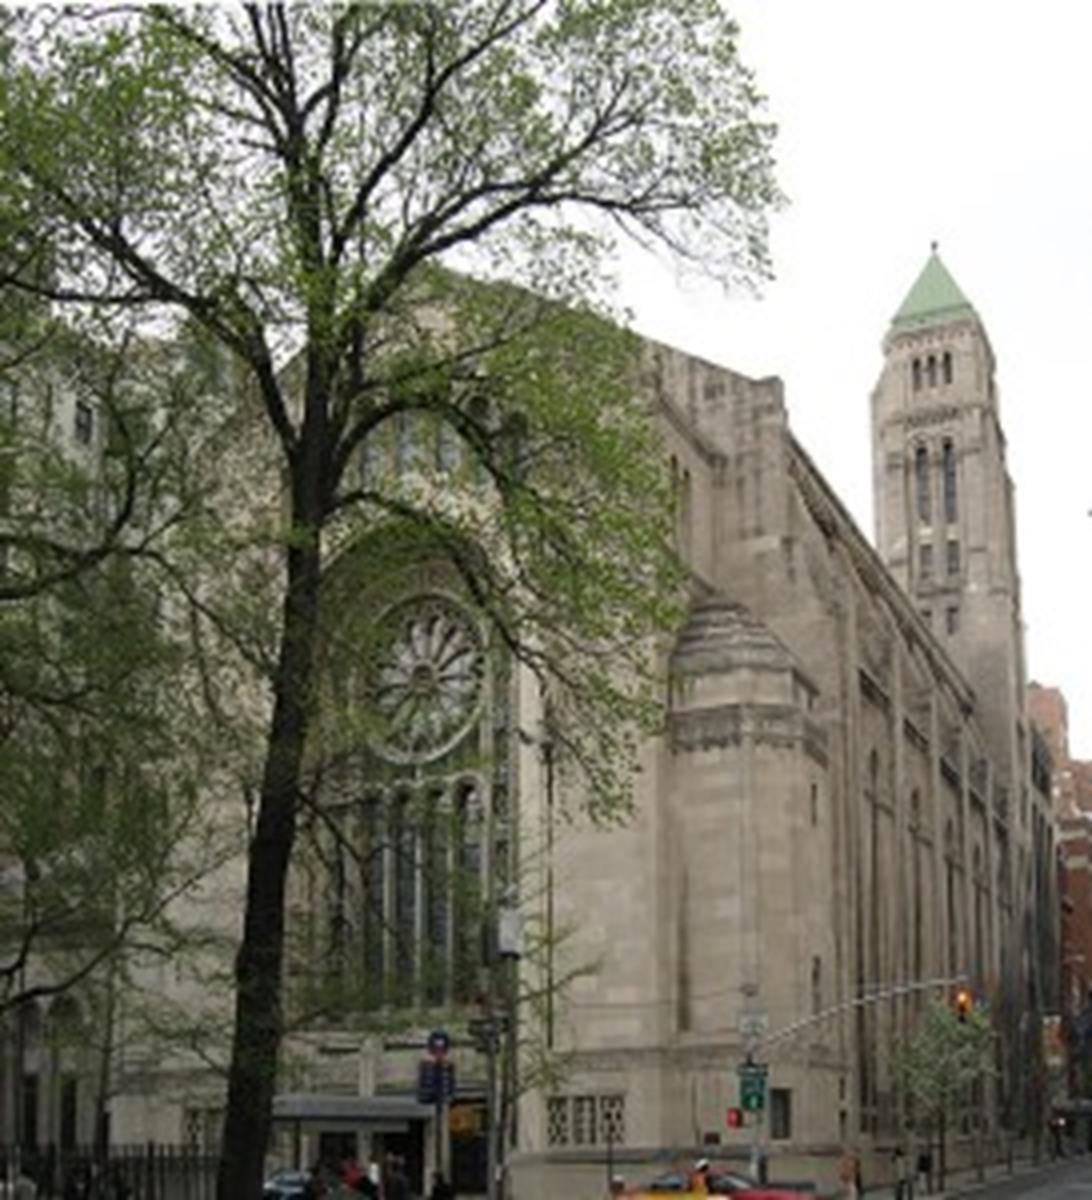 Temple Emanu-El in New York, New York